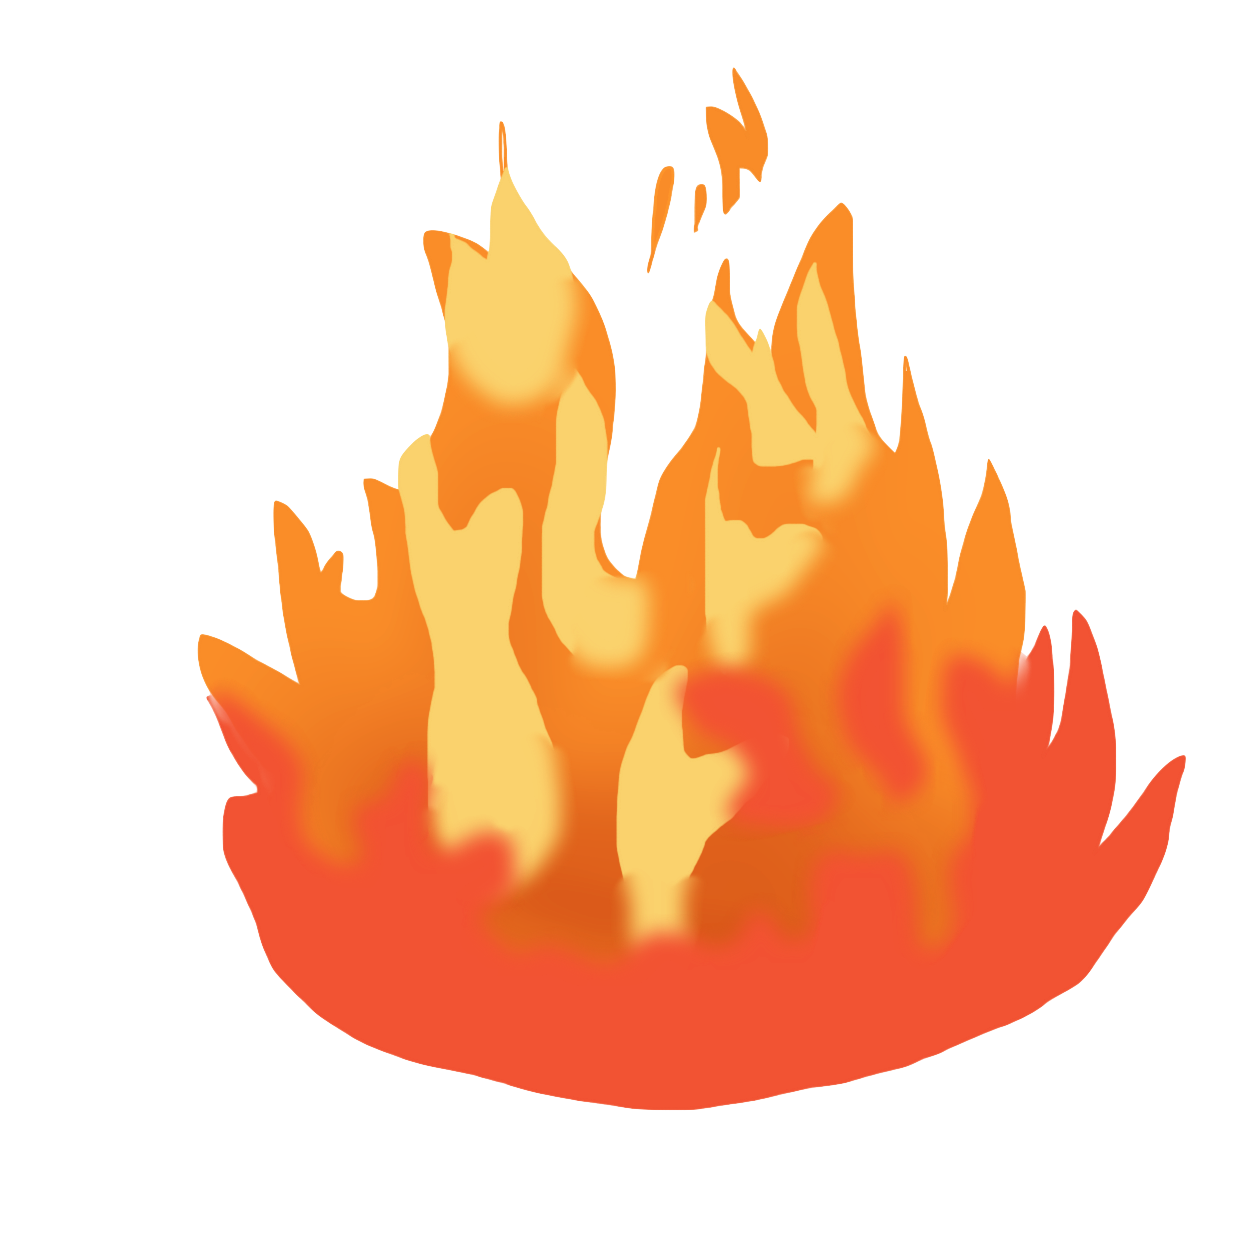 Free vector art flames clipart 2 clipartix - Cliparting.com svg transparent download